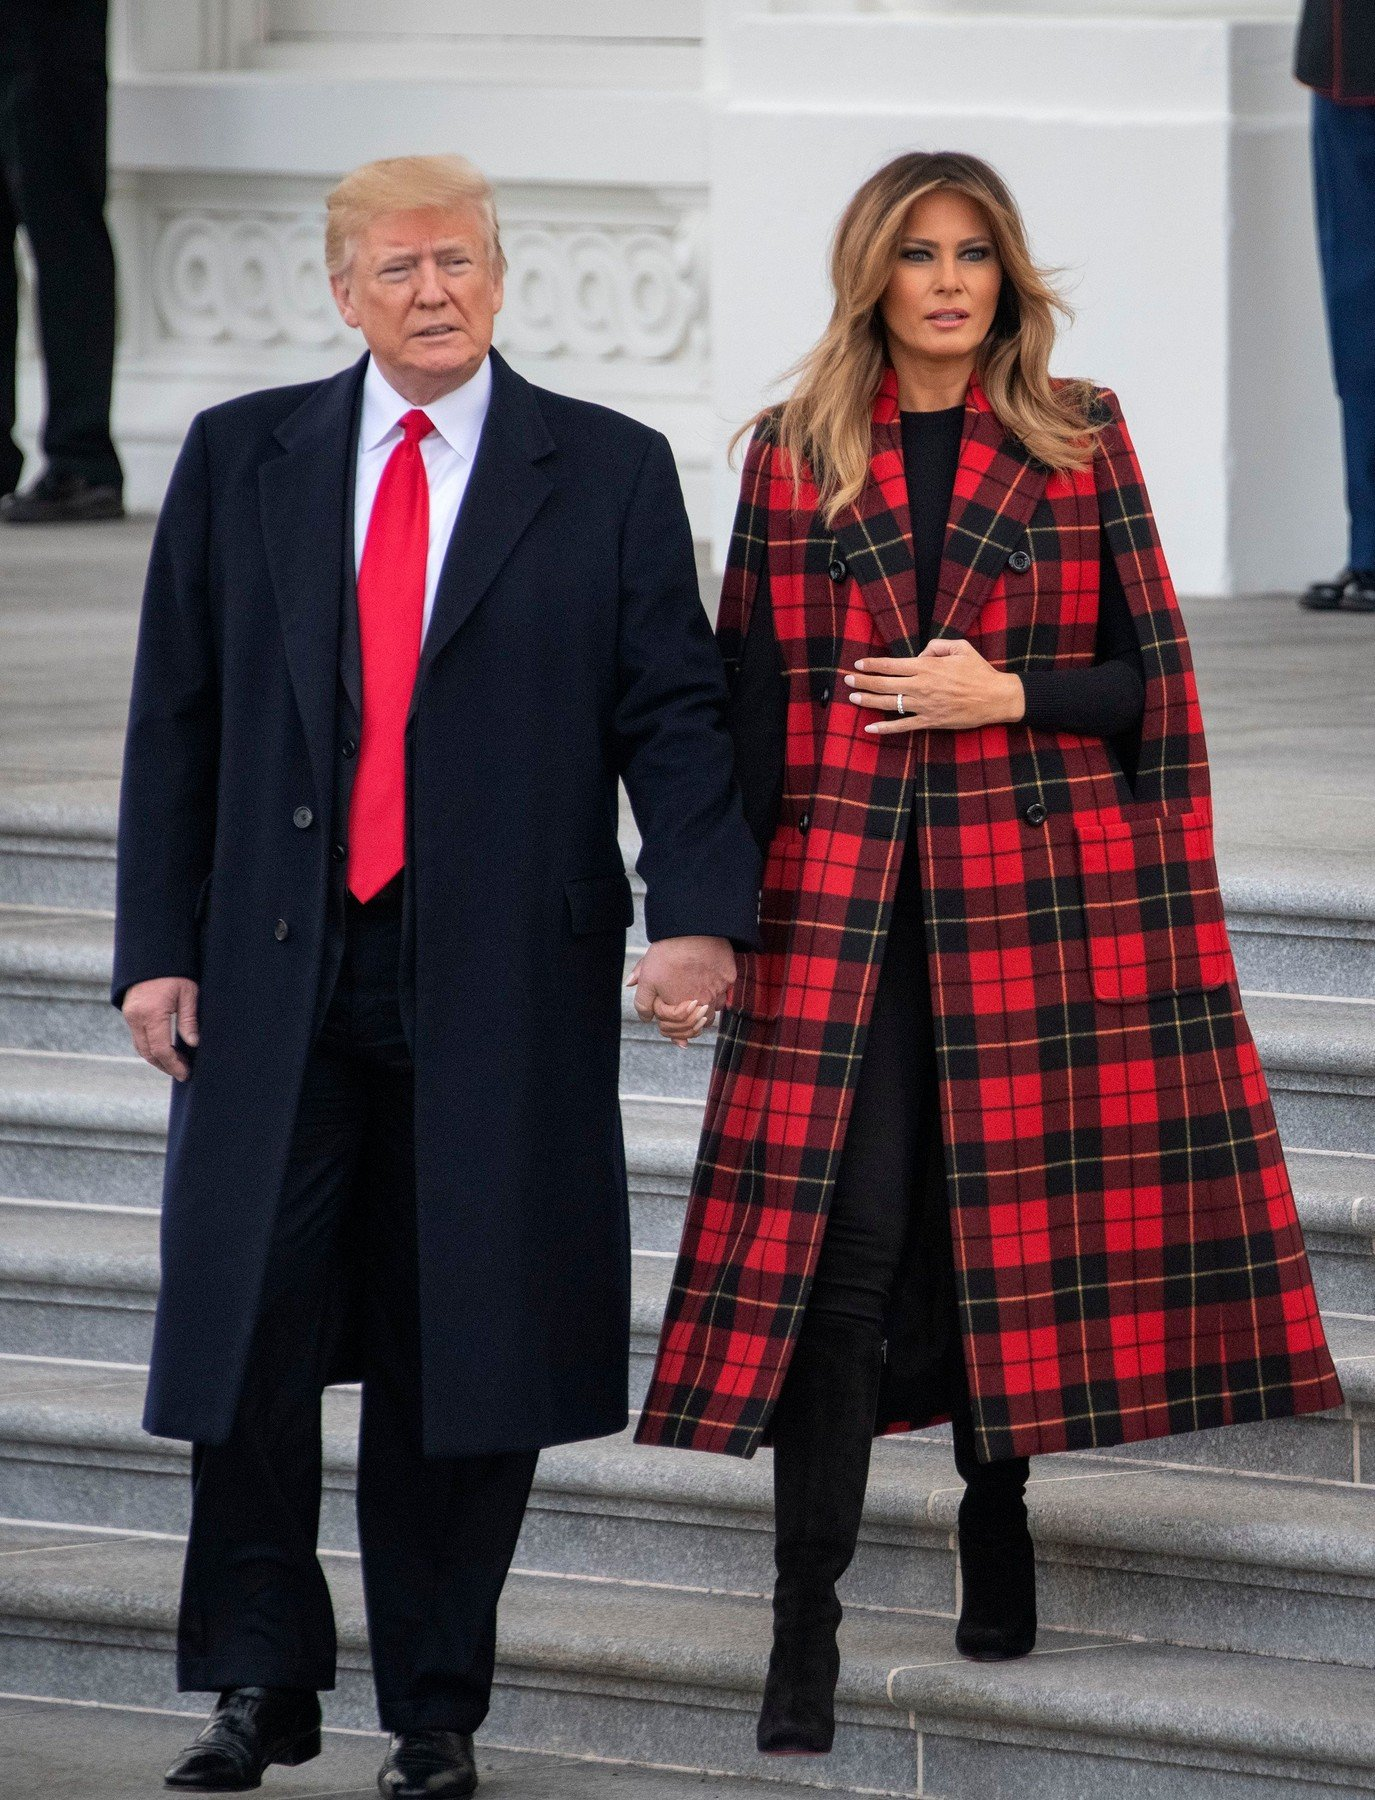 United States President Donald J. Trump and First lady Melania Trump walk out of the North Portico to accept the White House Christmas tree on the North Driveway of the White House in Washington, DC. The 2018 White House Christmas Tree will arrive as in previous years by horse and carriage on the North Portico. The tree will be displayed in the Blue Room of the White House. White House Christmas Tree Arrives, Washington DC, USA - 19 Nov 2018, Image: 397378304, License: Rights-managed, Restrictions: No New York or New Jersey Newspapers or newspapers within a 75 mile radius of New York City, Model Release: no, Credit line: Profimedia, TEMP Rex Features